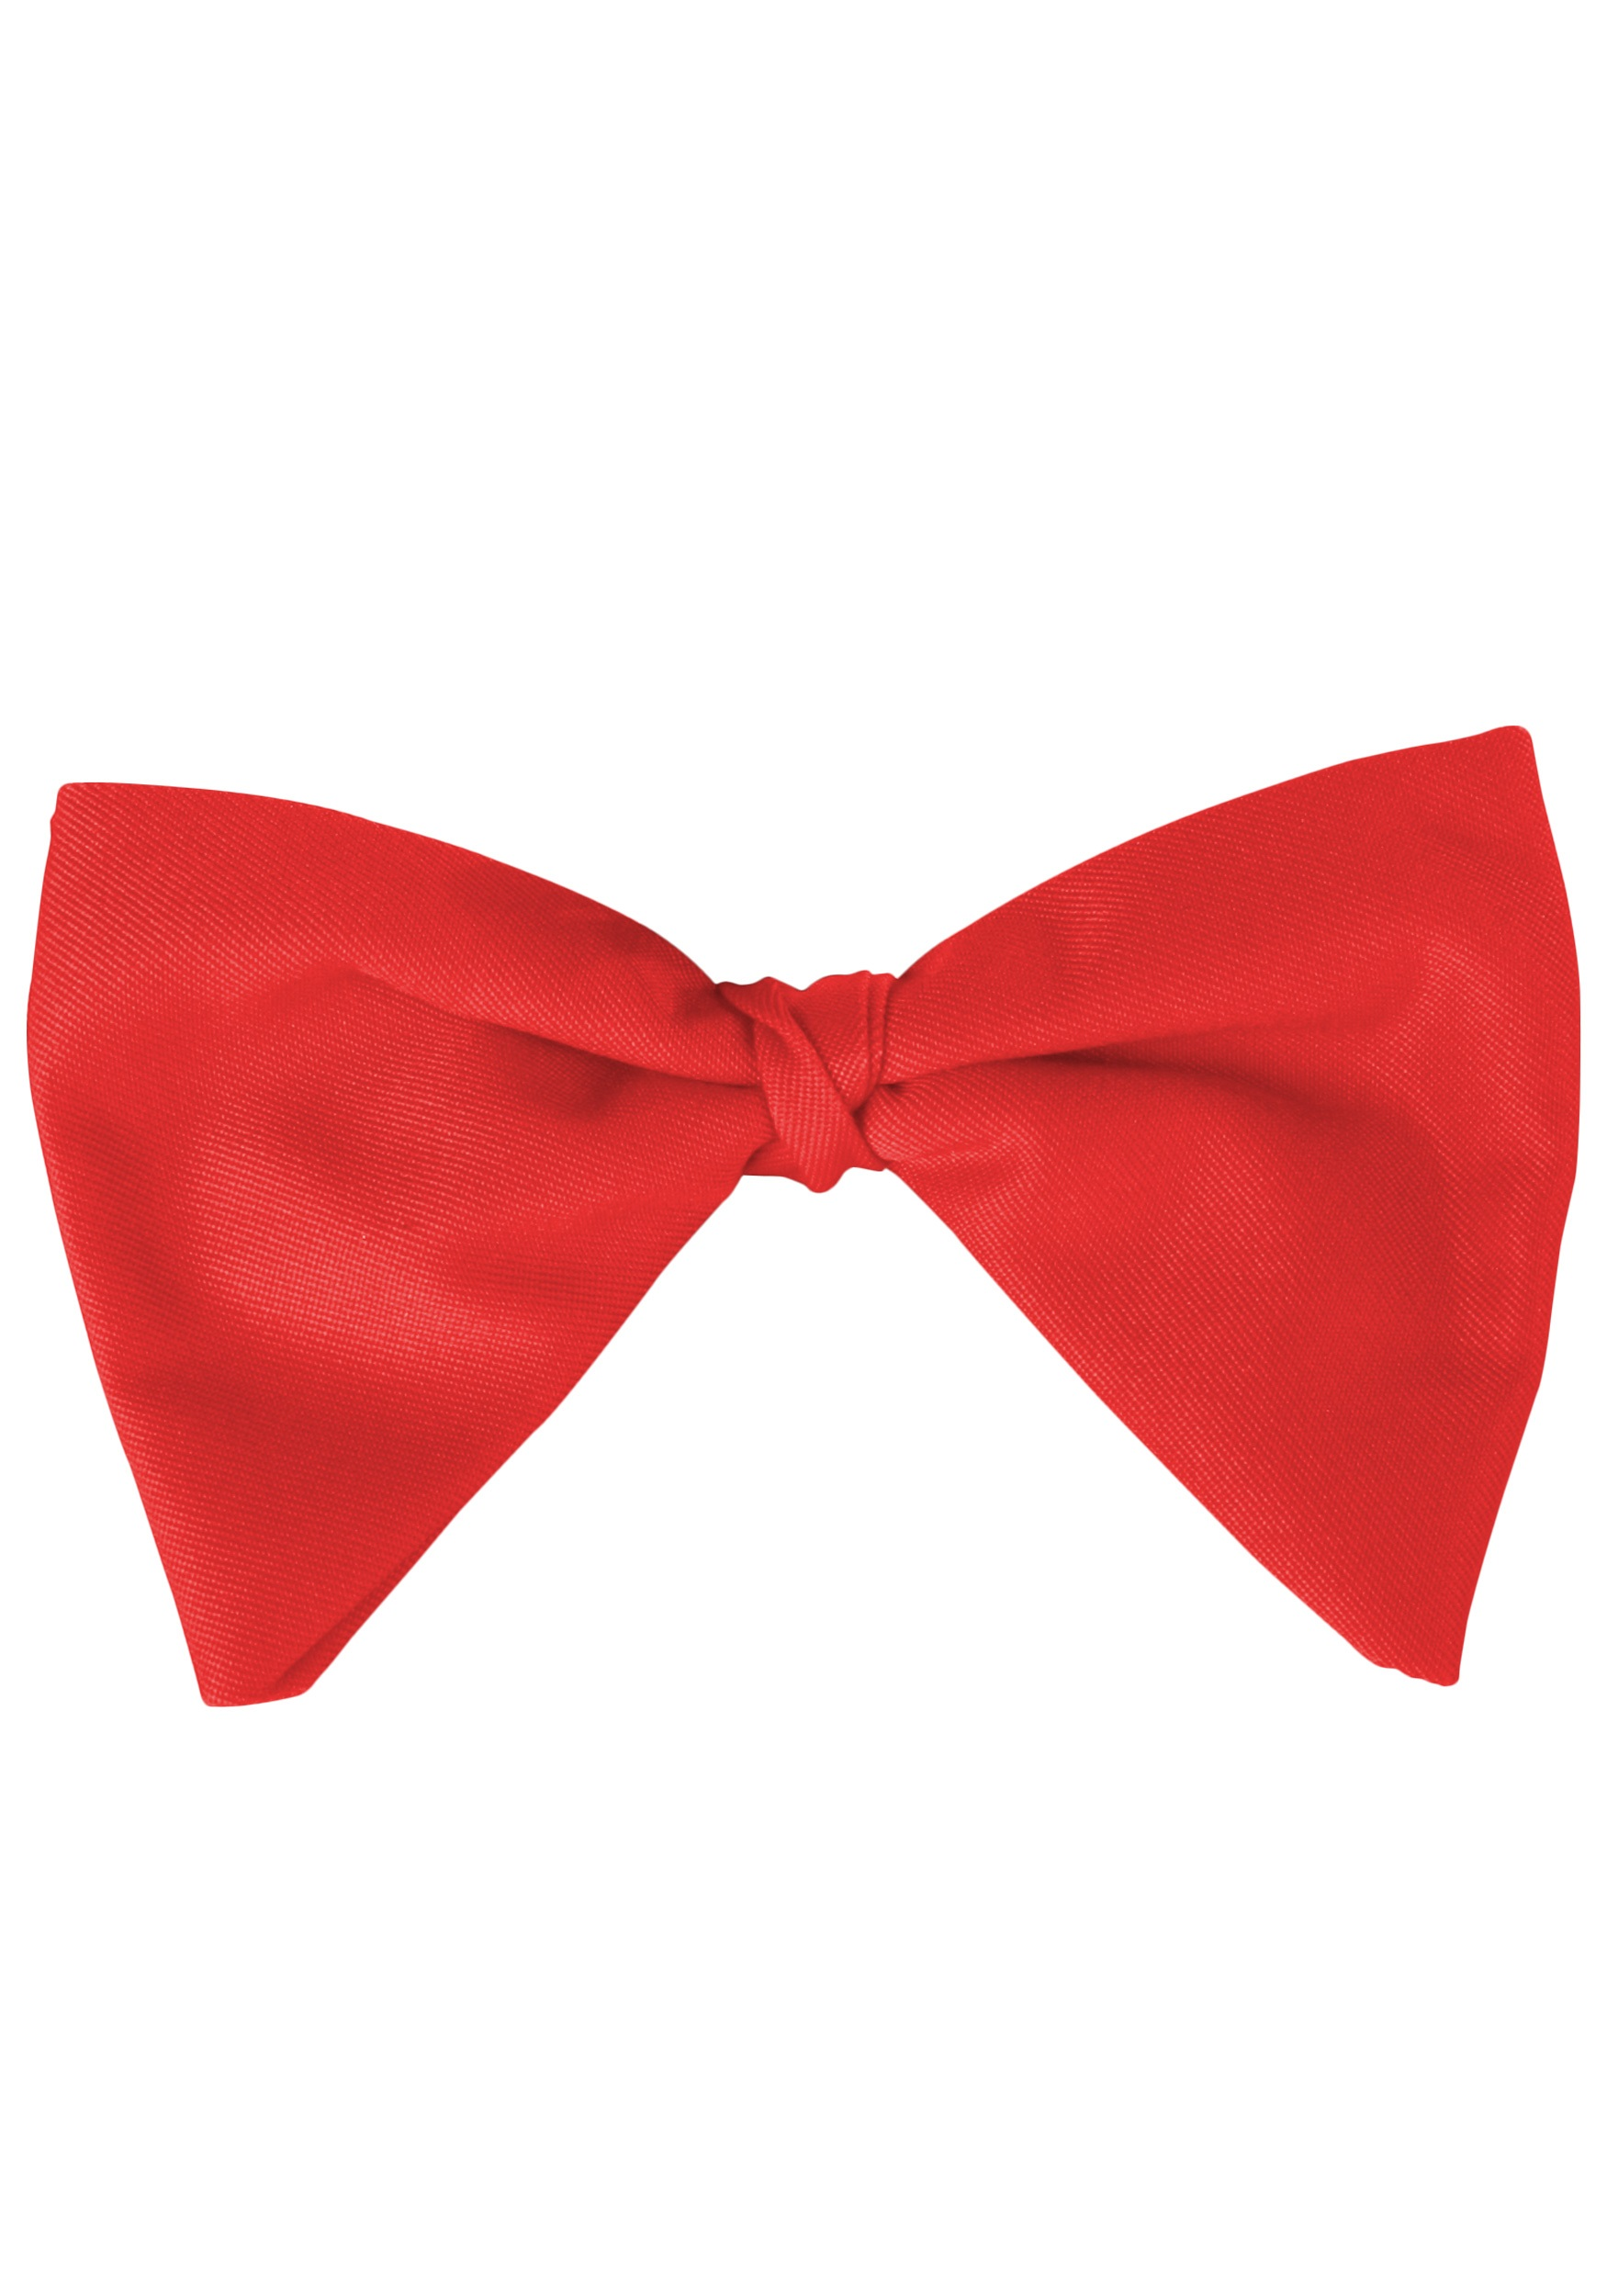 red bowtie clipart best